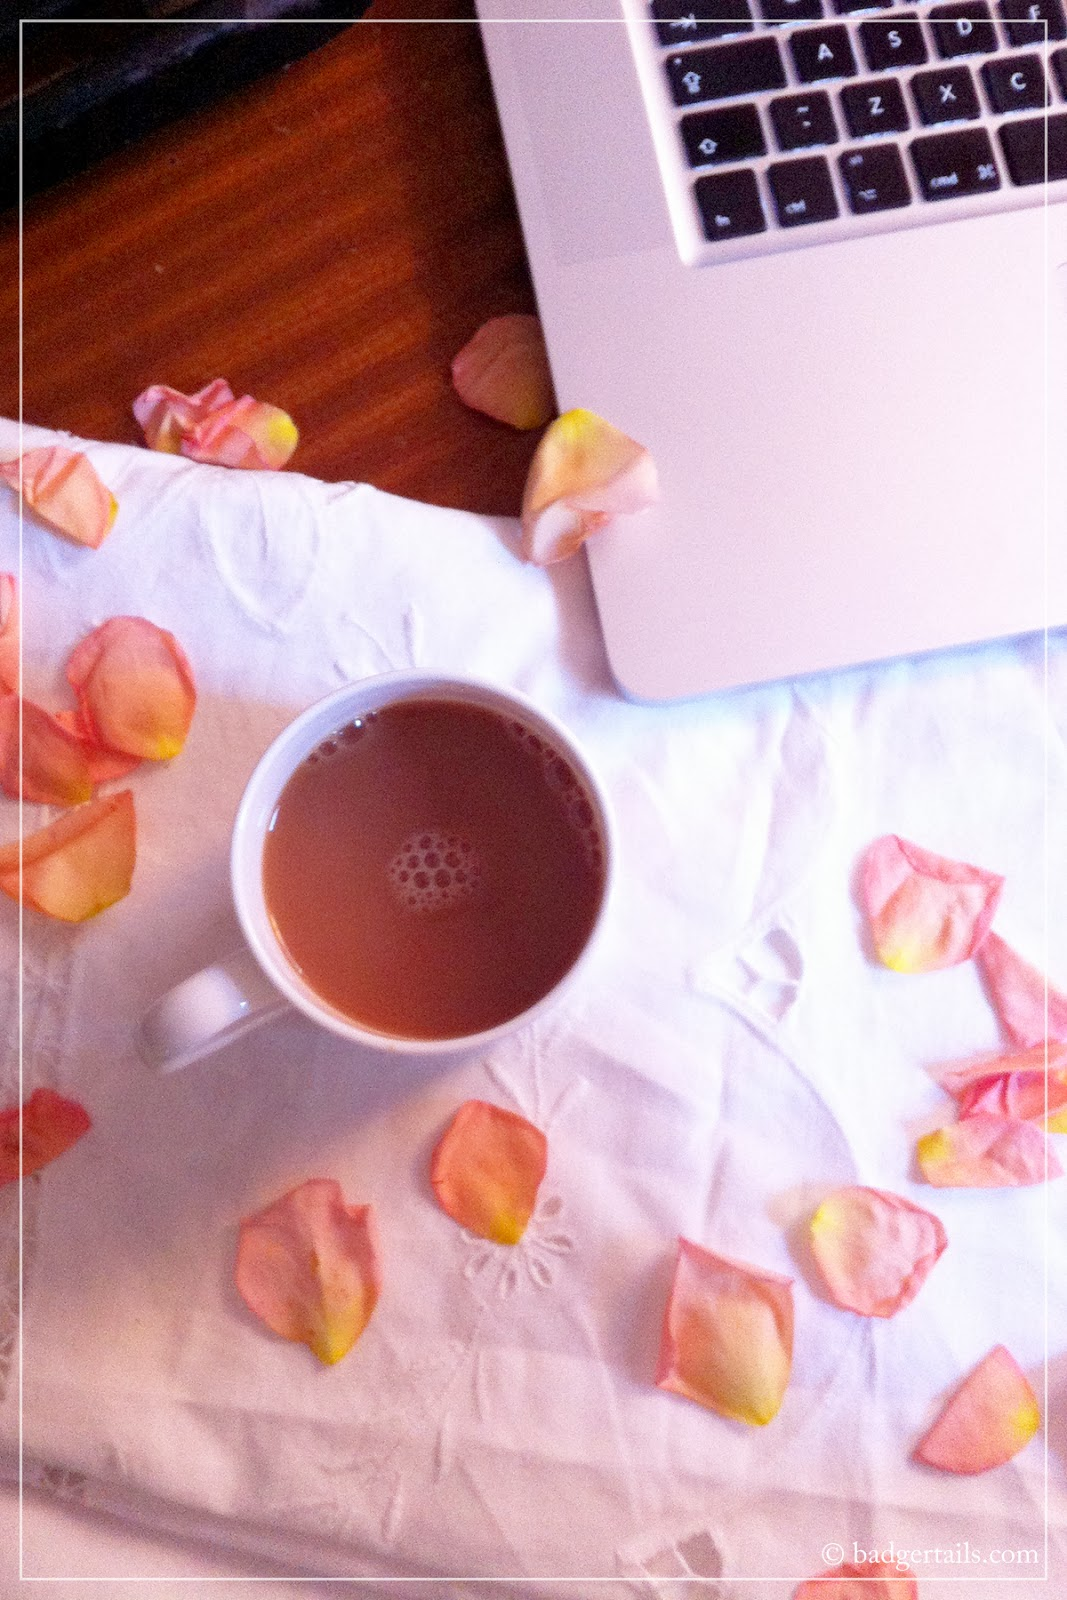 cup of tea with apple macbook pro computer laptop and rose petals on desk